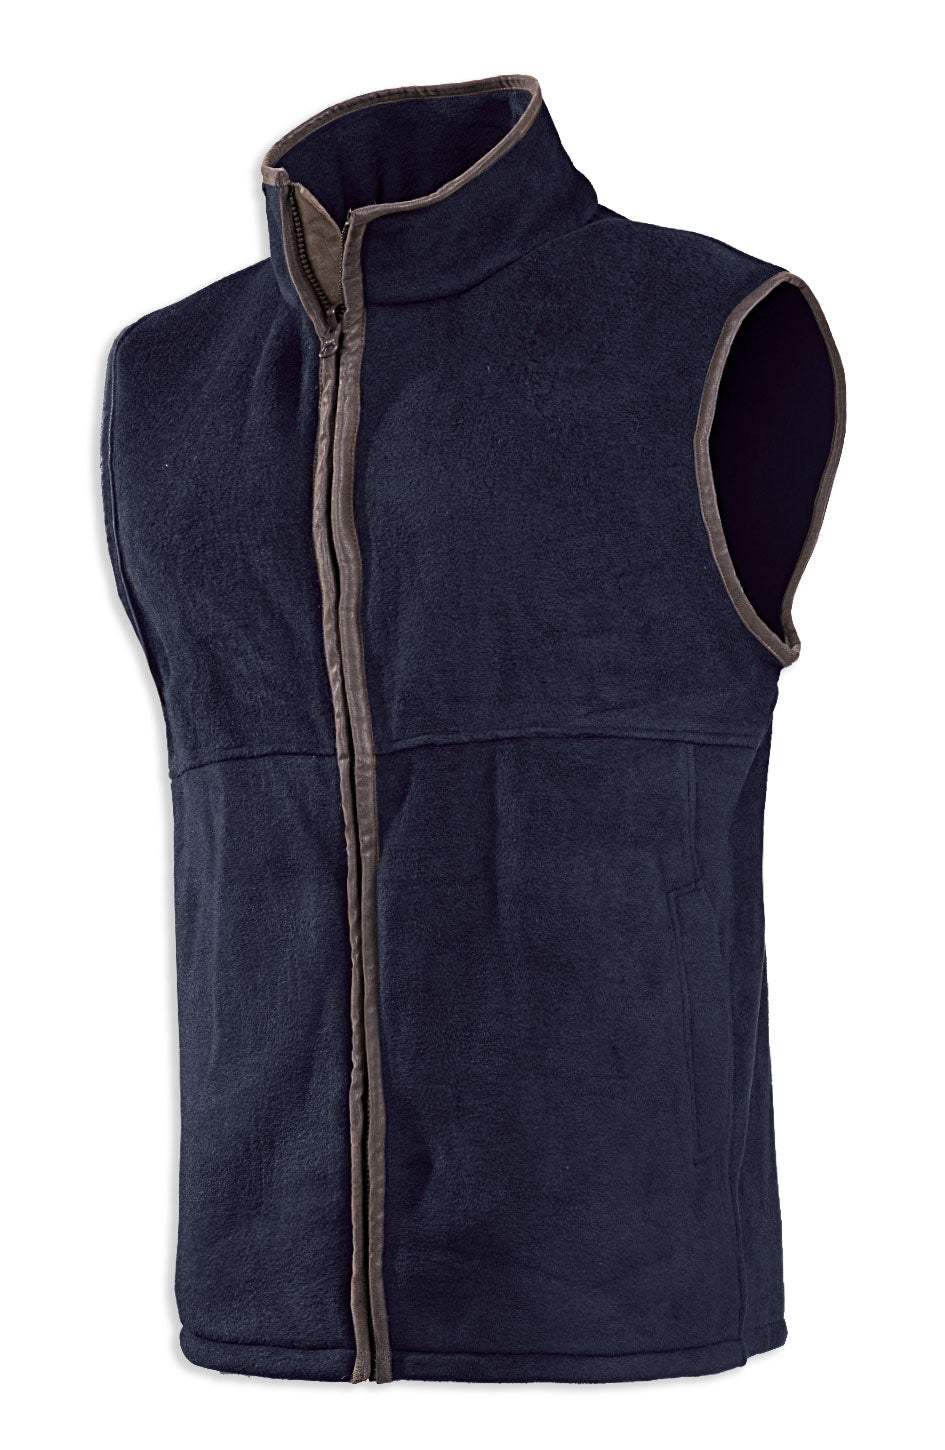 navy Baleno Wizz Kids Fleece Gilet